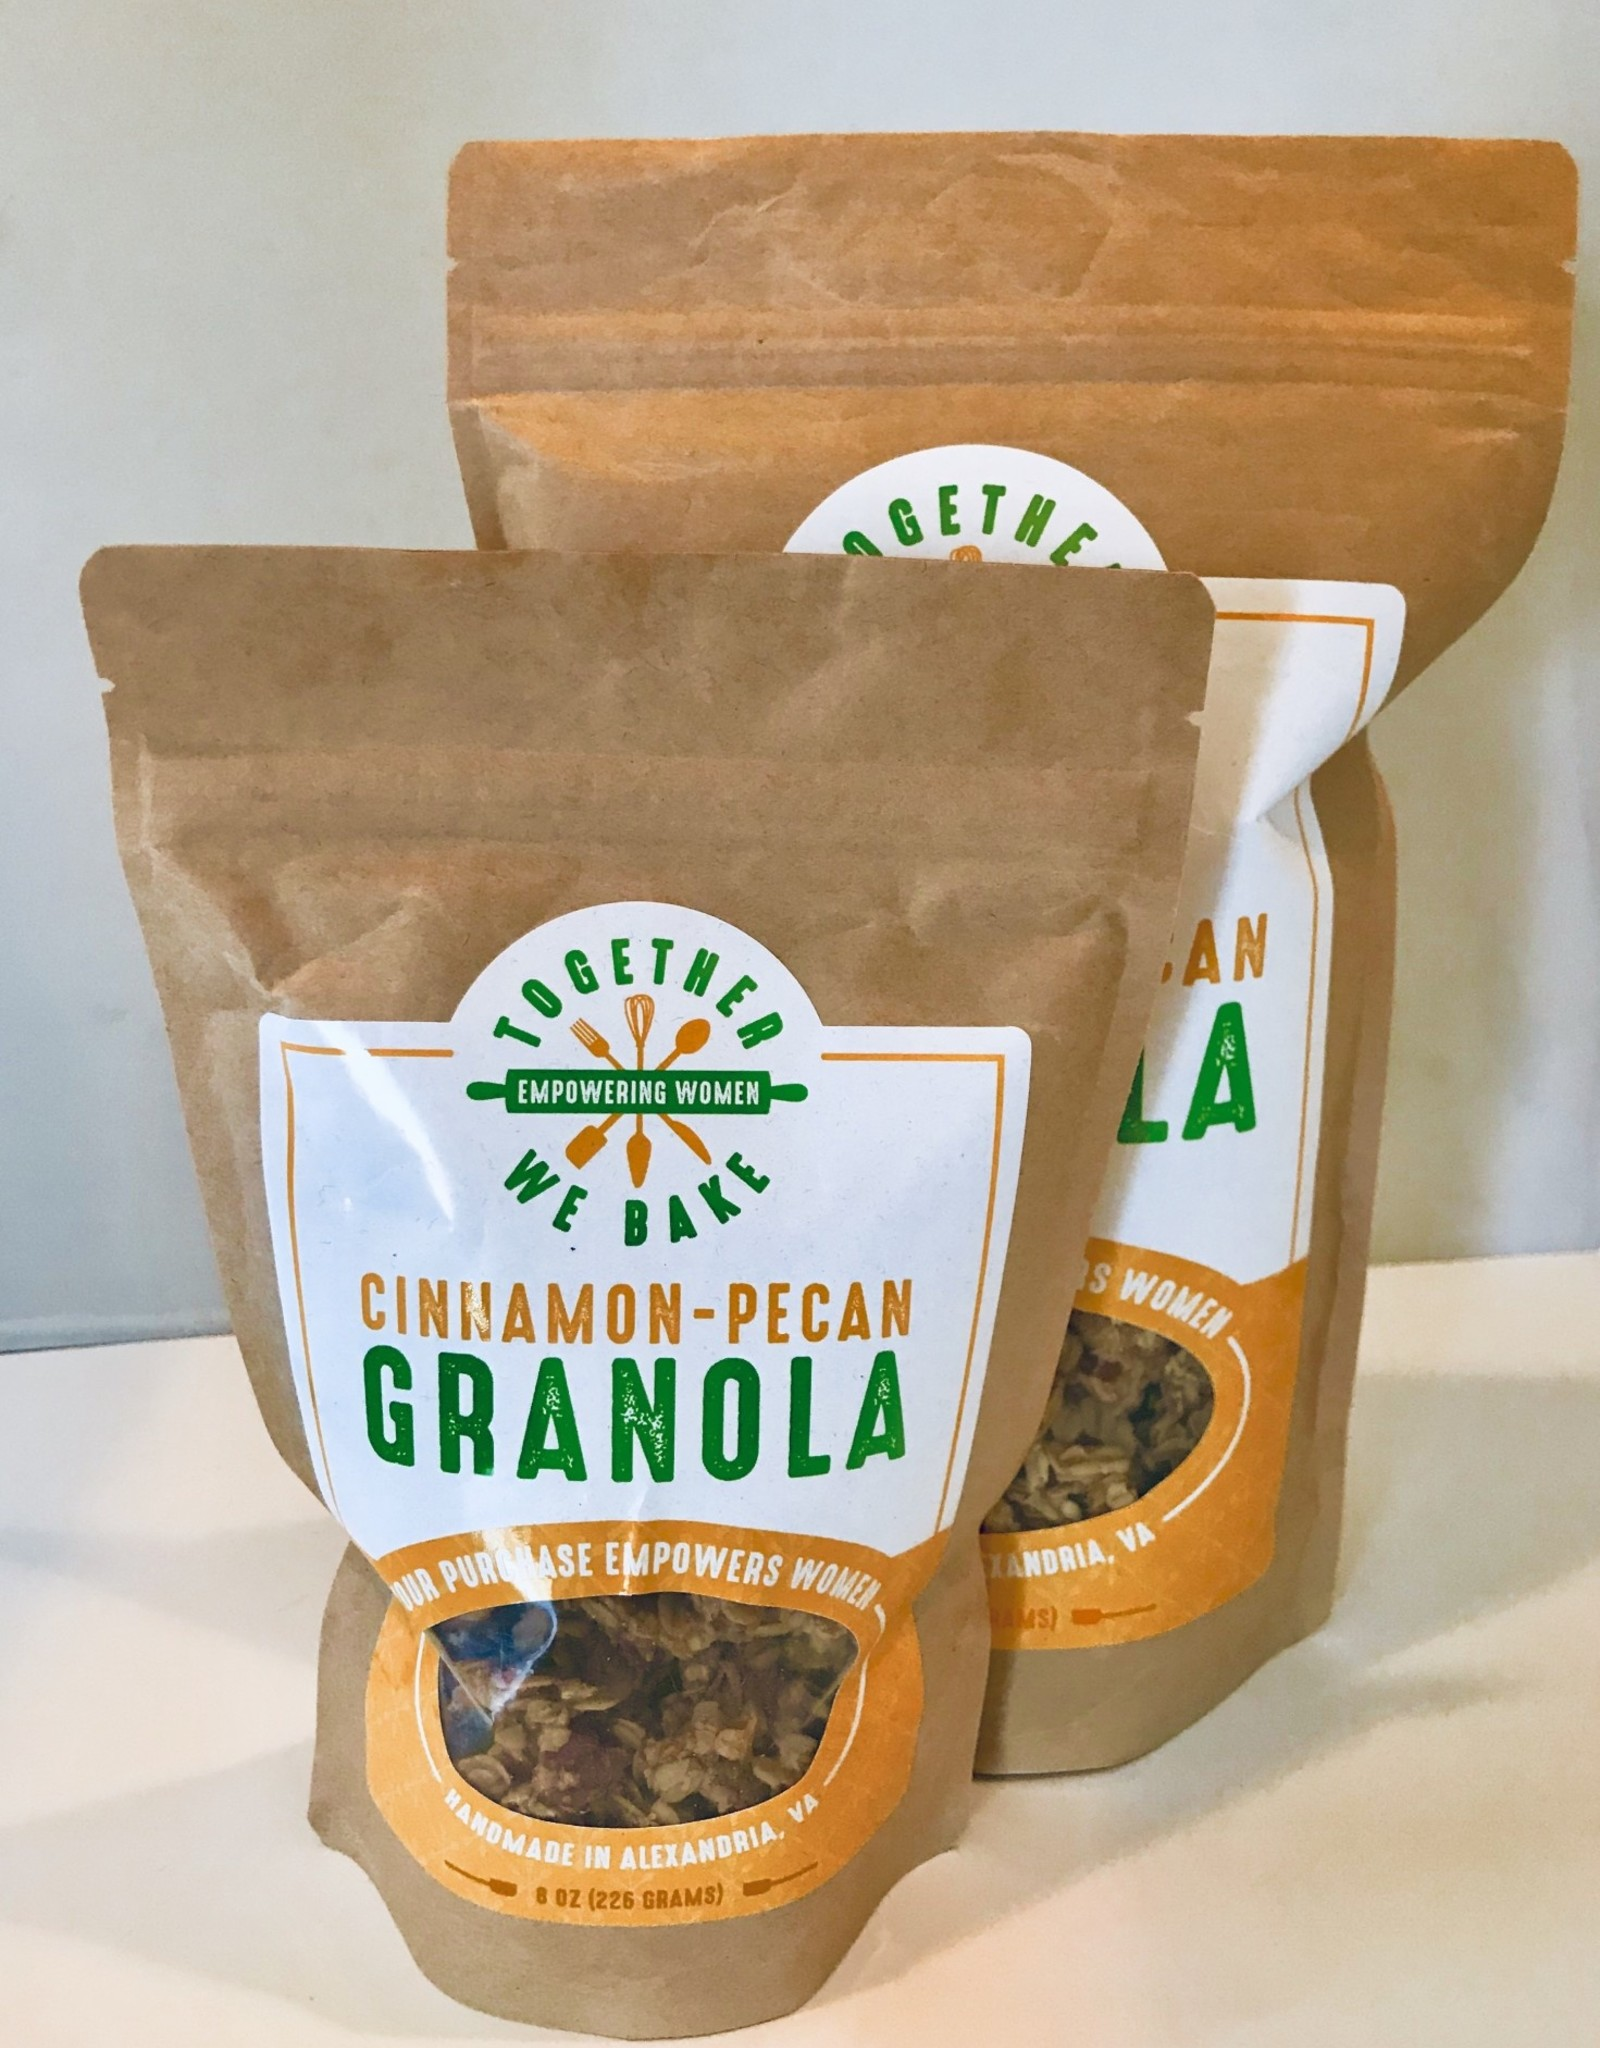 Together We Bake Granola (Pound)